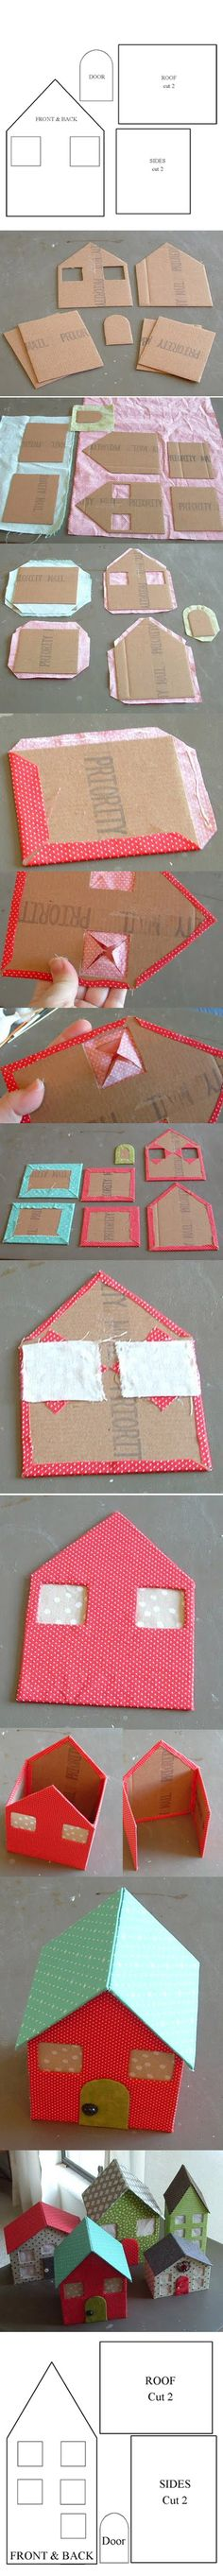 i'm thinking use different fabric and battery tea lights to make a christmas village. to make a How To: Make Your Own Doll House From Cardboard & Fabric Kids Crafts, Diy And Crafts, Arts And Crafts, Diy Projects To Try, Craft Projects, Sewing Projects, Cardboard Crafts, Paper Crafts, Cardboard Houses